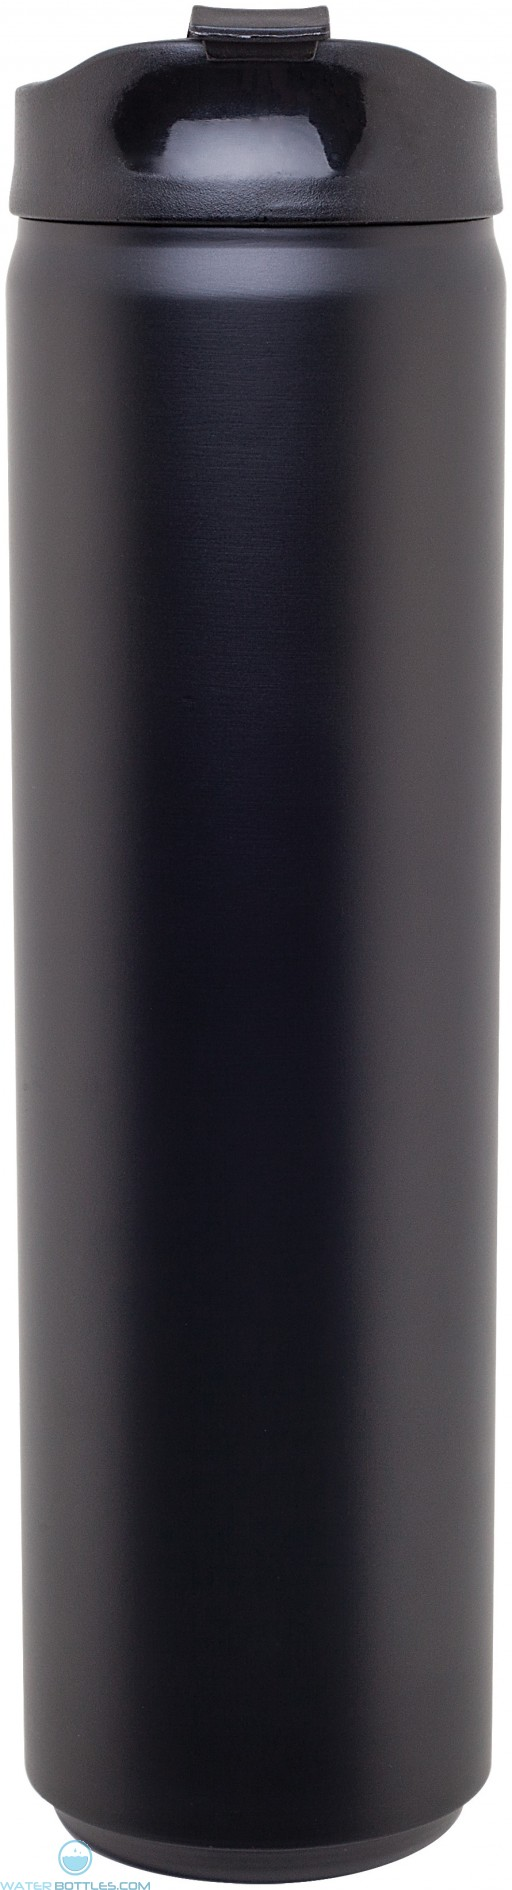 Stainless Steel Thermal Can | 20 oz - Matte Black